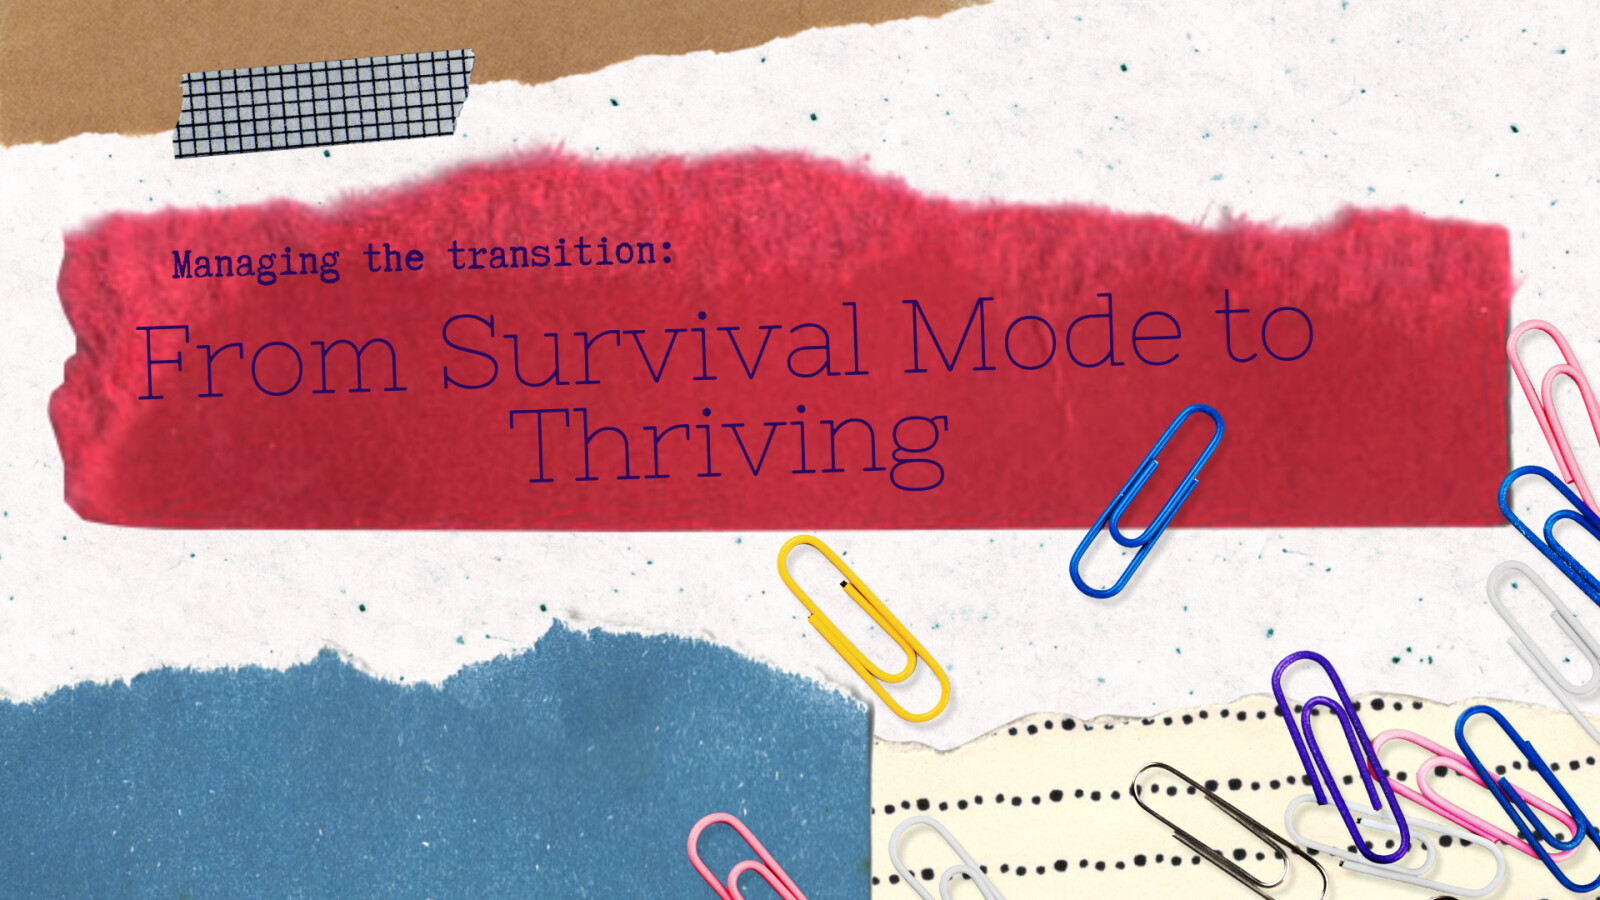 Managing the Transistion: from Survival Mode to Thriving